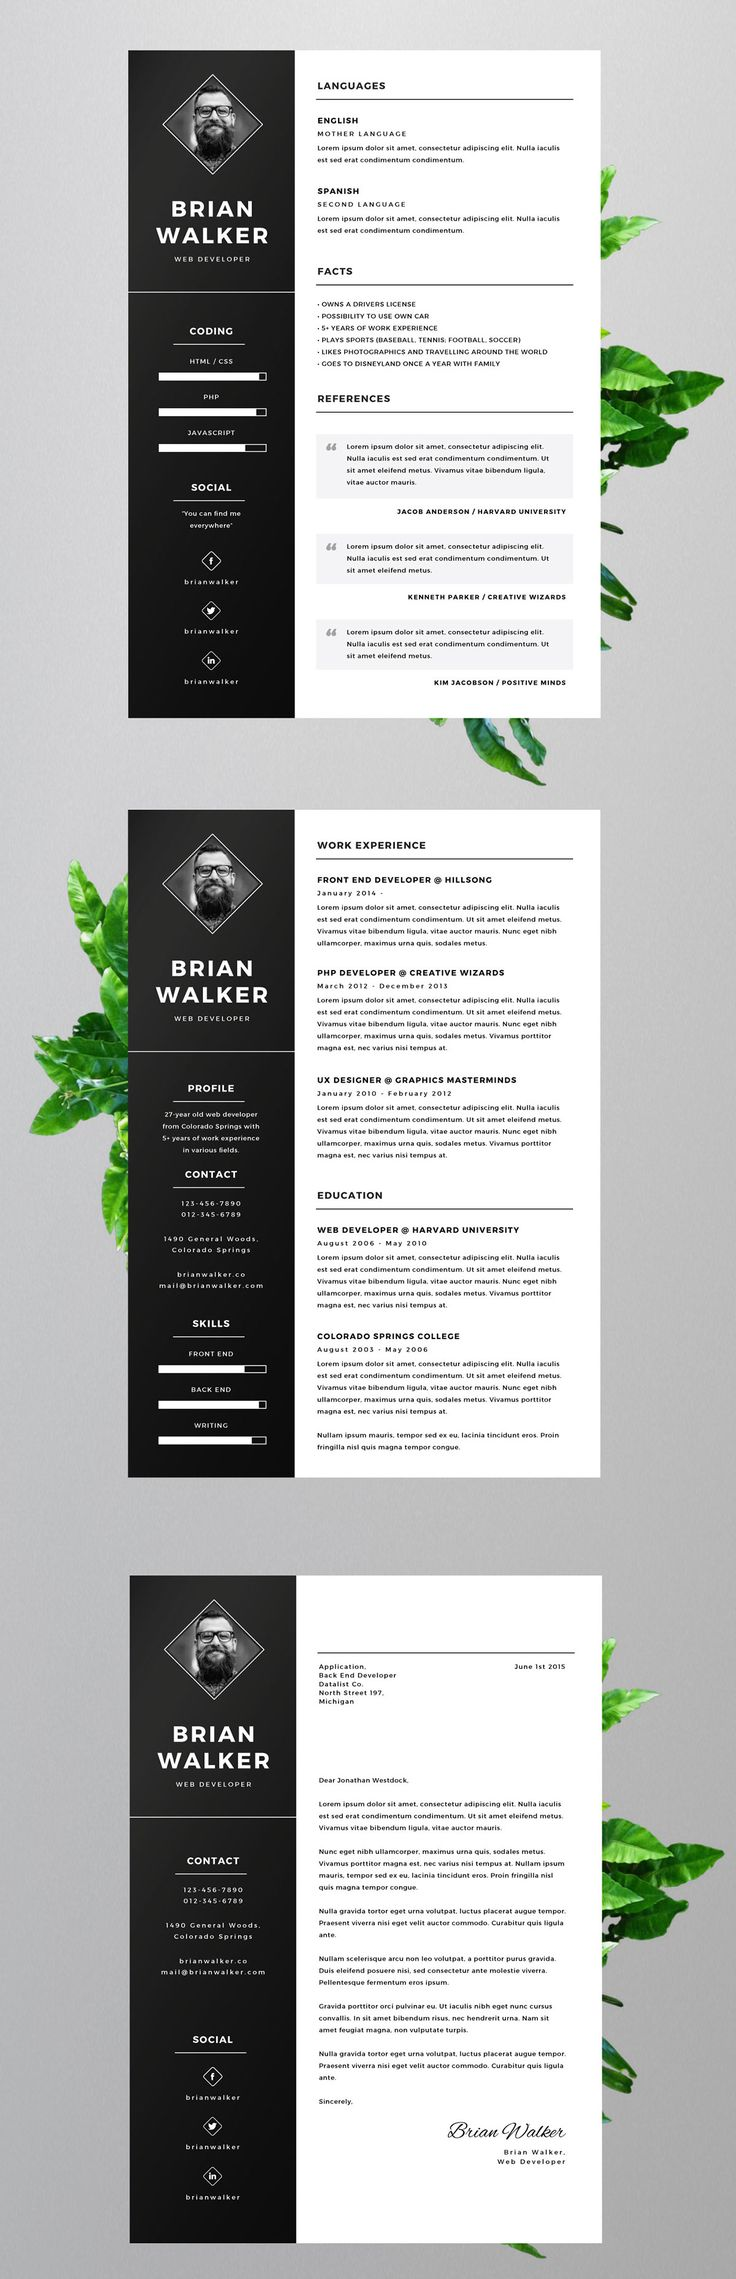 free resume template for microsoft word adobe photoshop and adobe illustrator free for personal - Free Resume Word Template